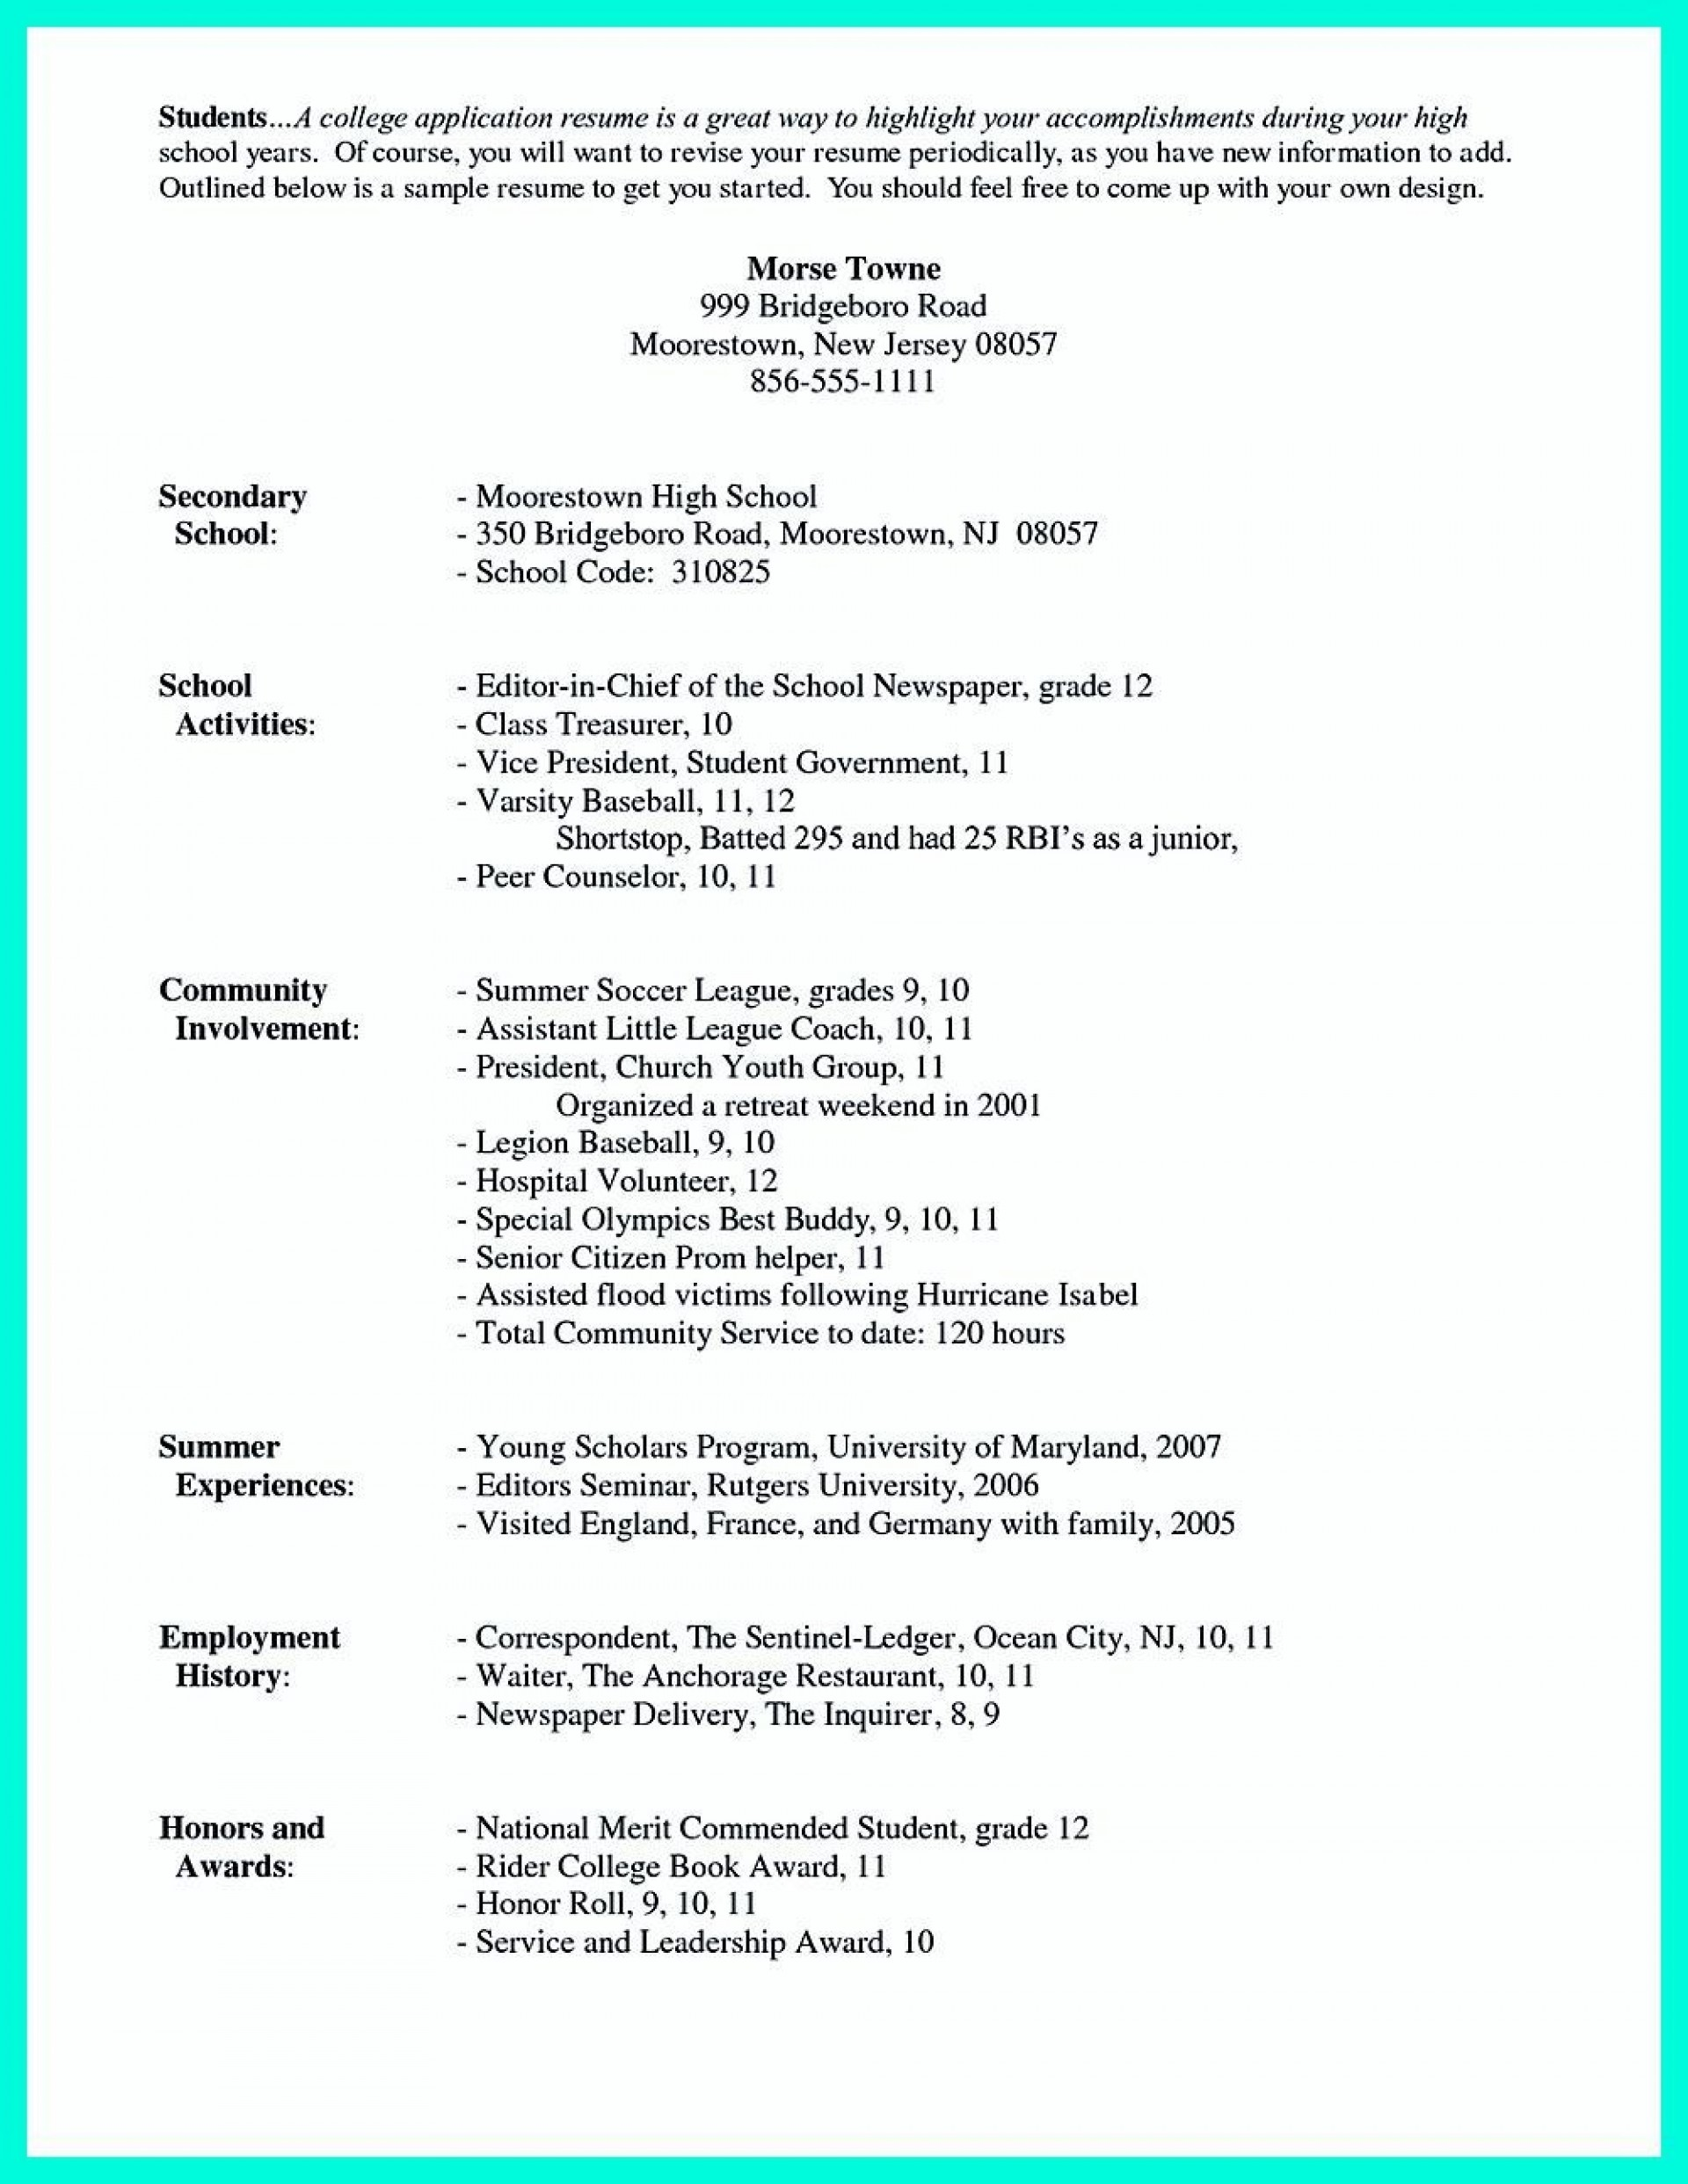 001 Stunning Resume For College Application Template Highest Quality  Templates1920